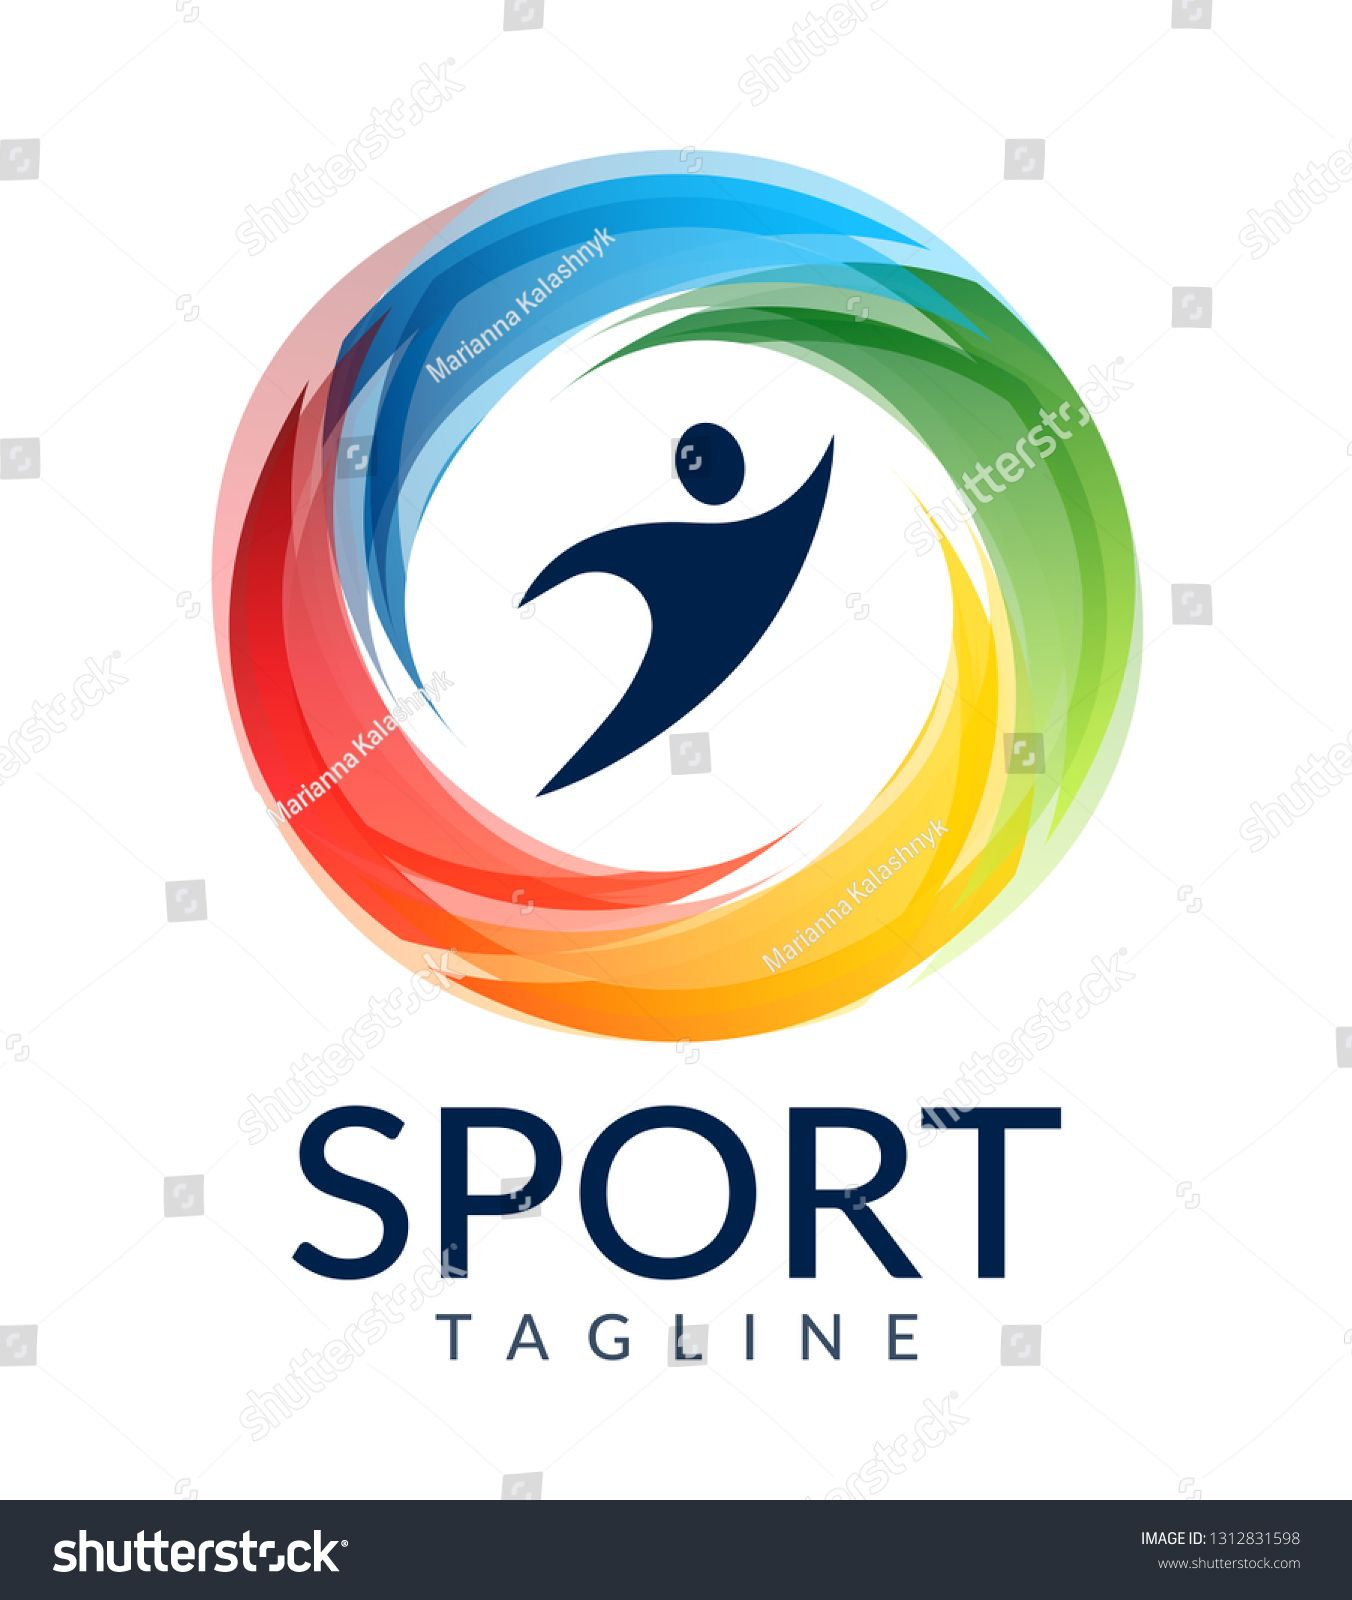 Sport people colorful web icon, vector logo, fitness